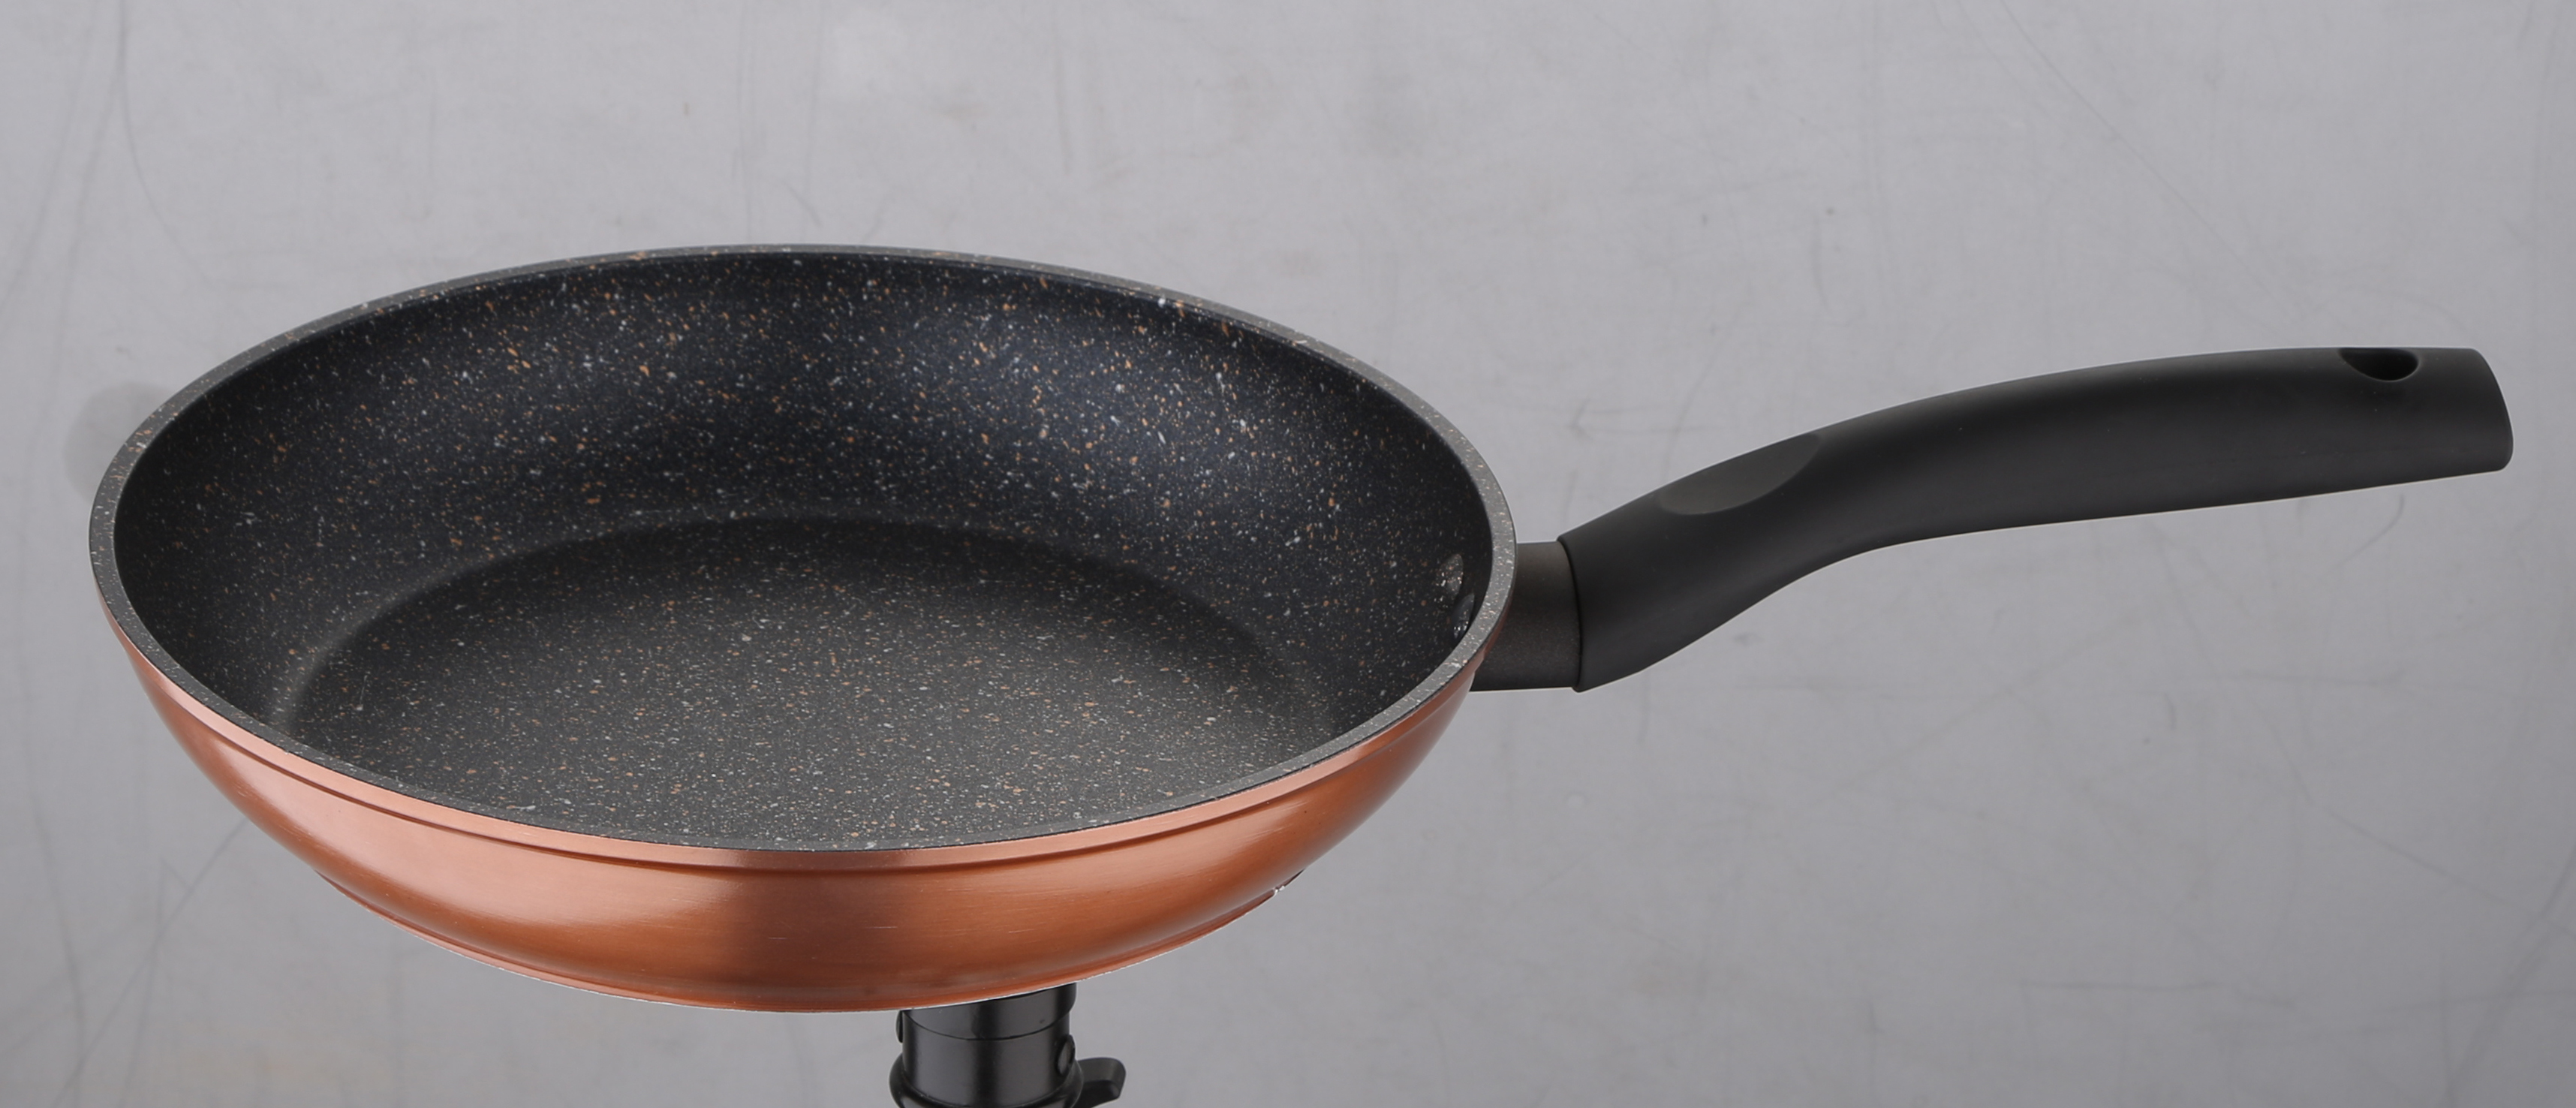 Natura Cookware in Copper and black Colour by Living Essence